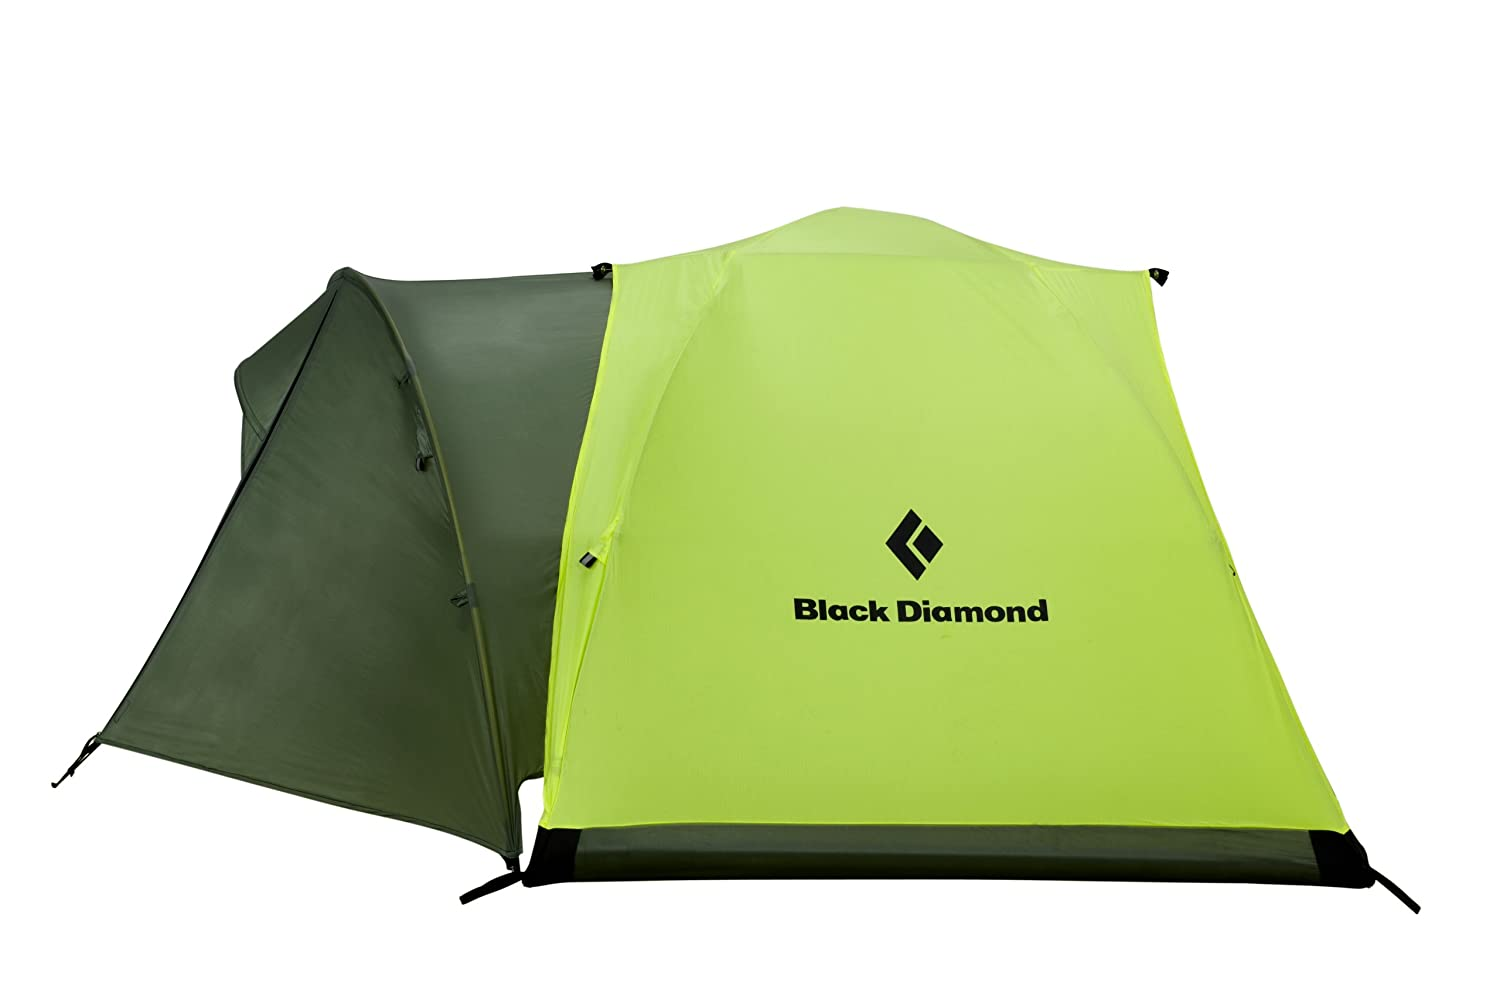 Amazon.com  Black Diamond HiLight Vestibule Tent  Tents With Vestibules  Sports u0026 Outdoors  sc 1 st  Amazon.com & Amazon.com : Black Diamond HiLight Vestibule Tent : Tents With ...